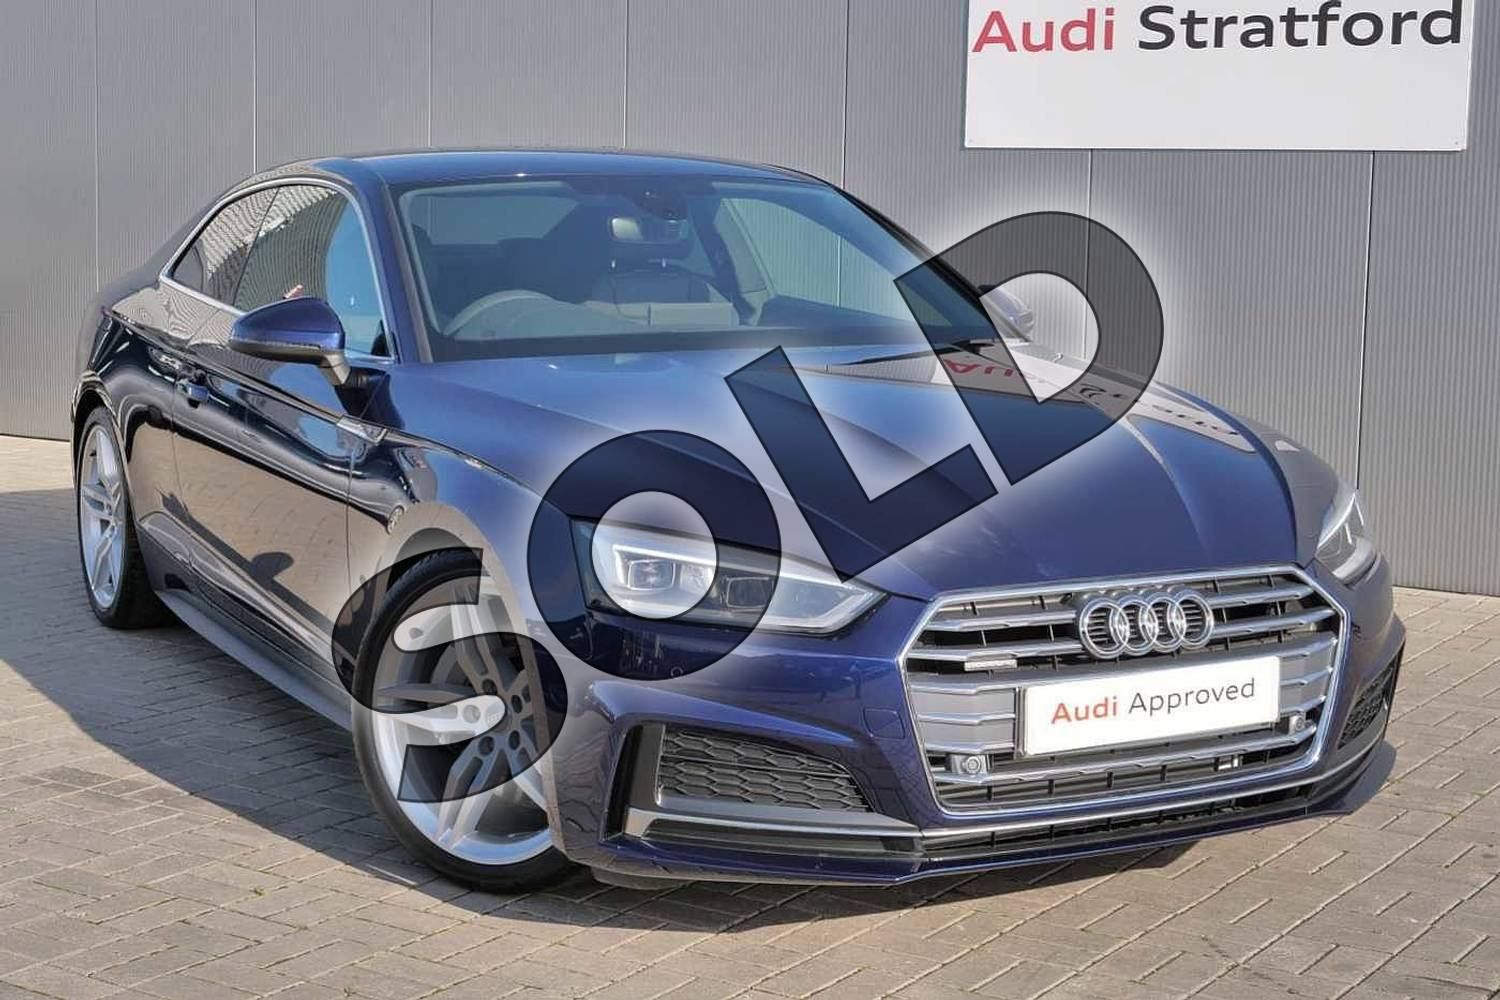 2019 Audi A5 Coupe 45 TFSI Quattro S Line 2dr S Tronic in Navarra Blue Metallic at Stratford Audi